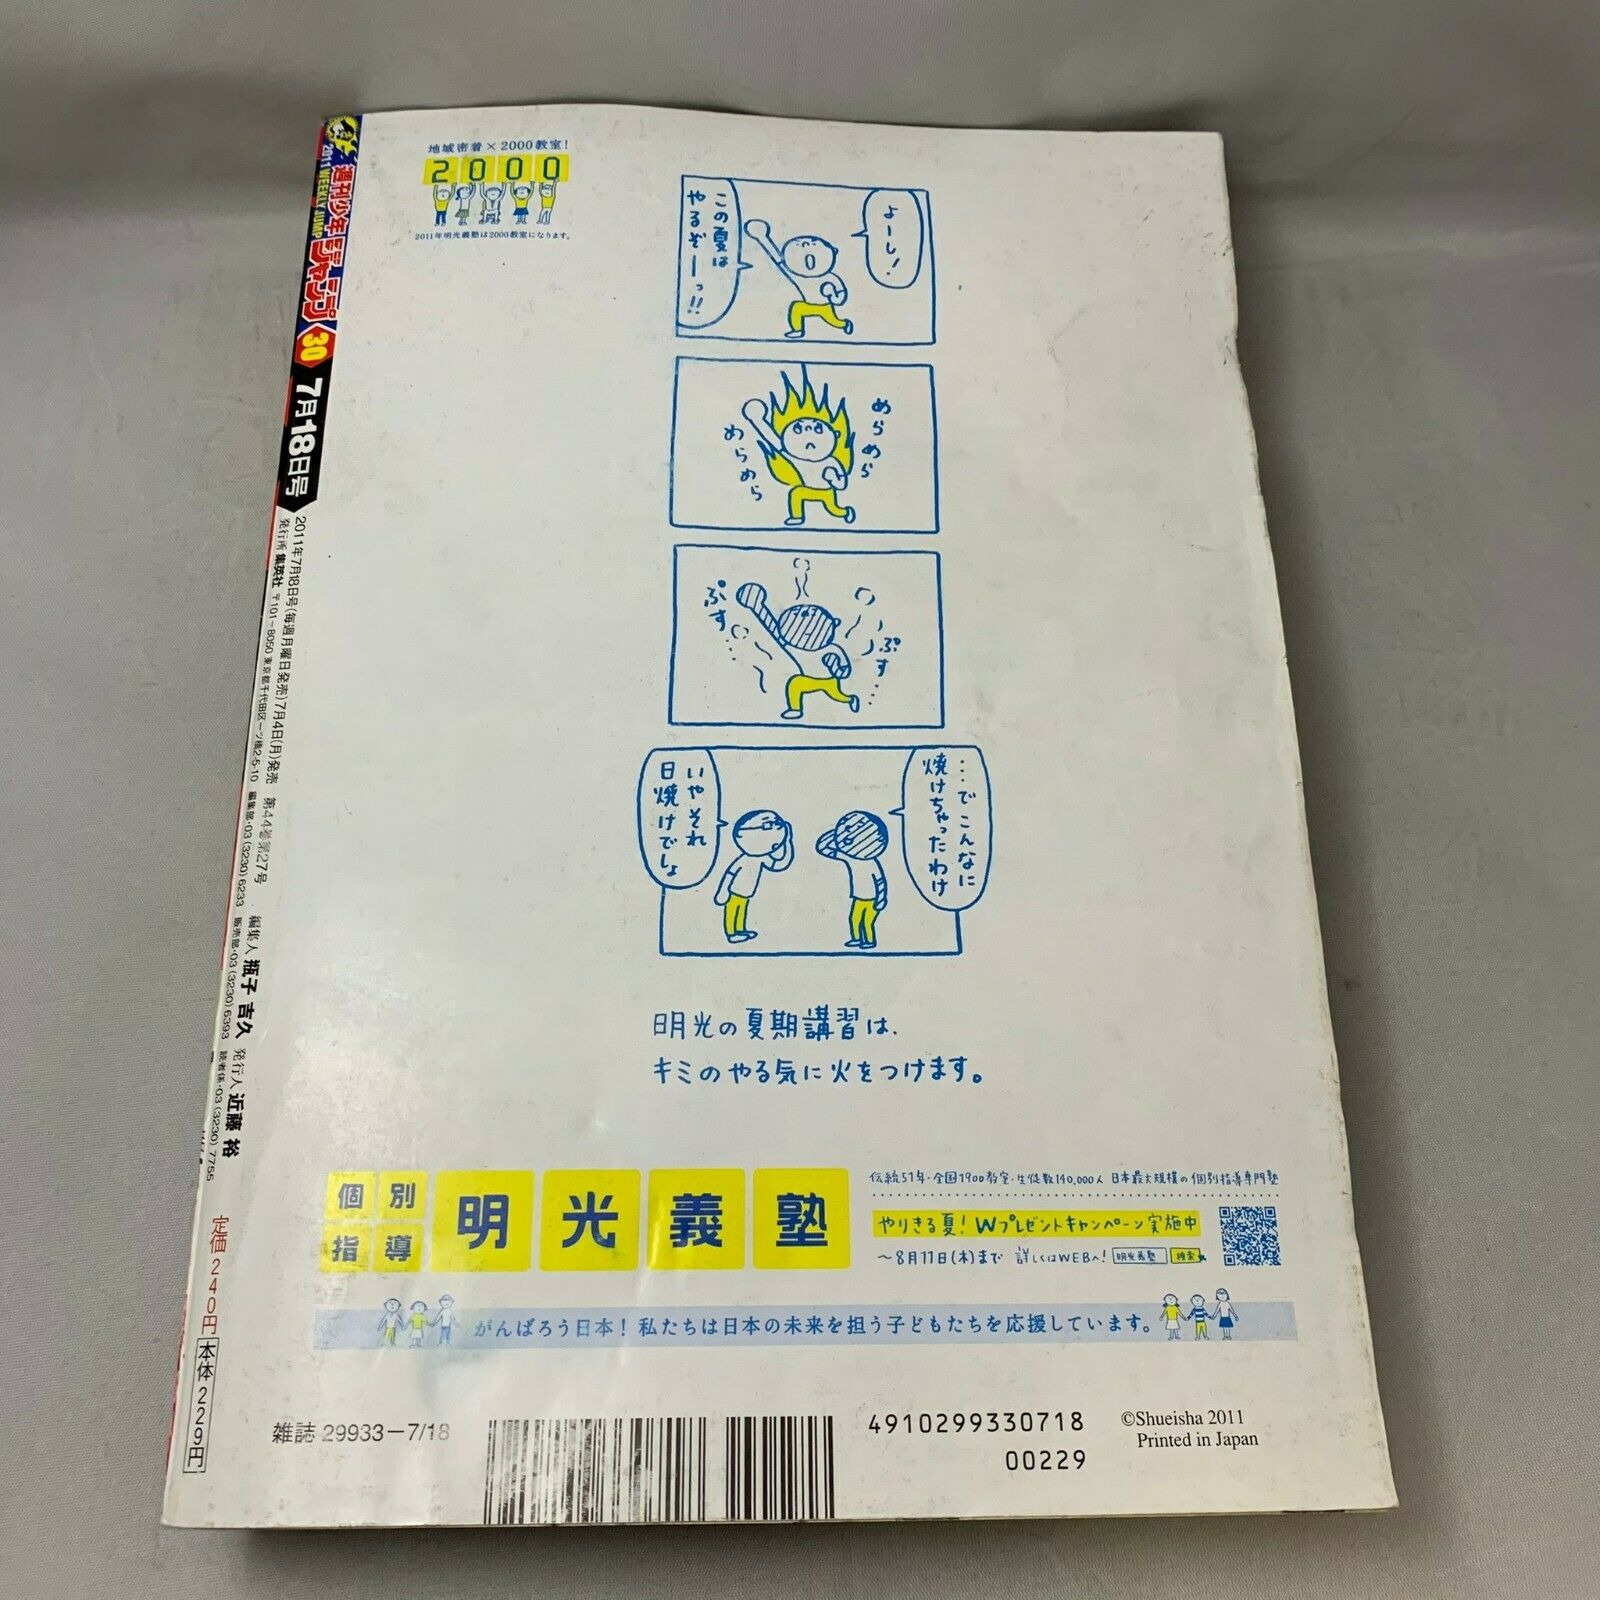 73 new products released Banana Fish Cafe & Bar Book